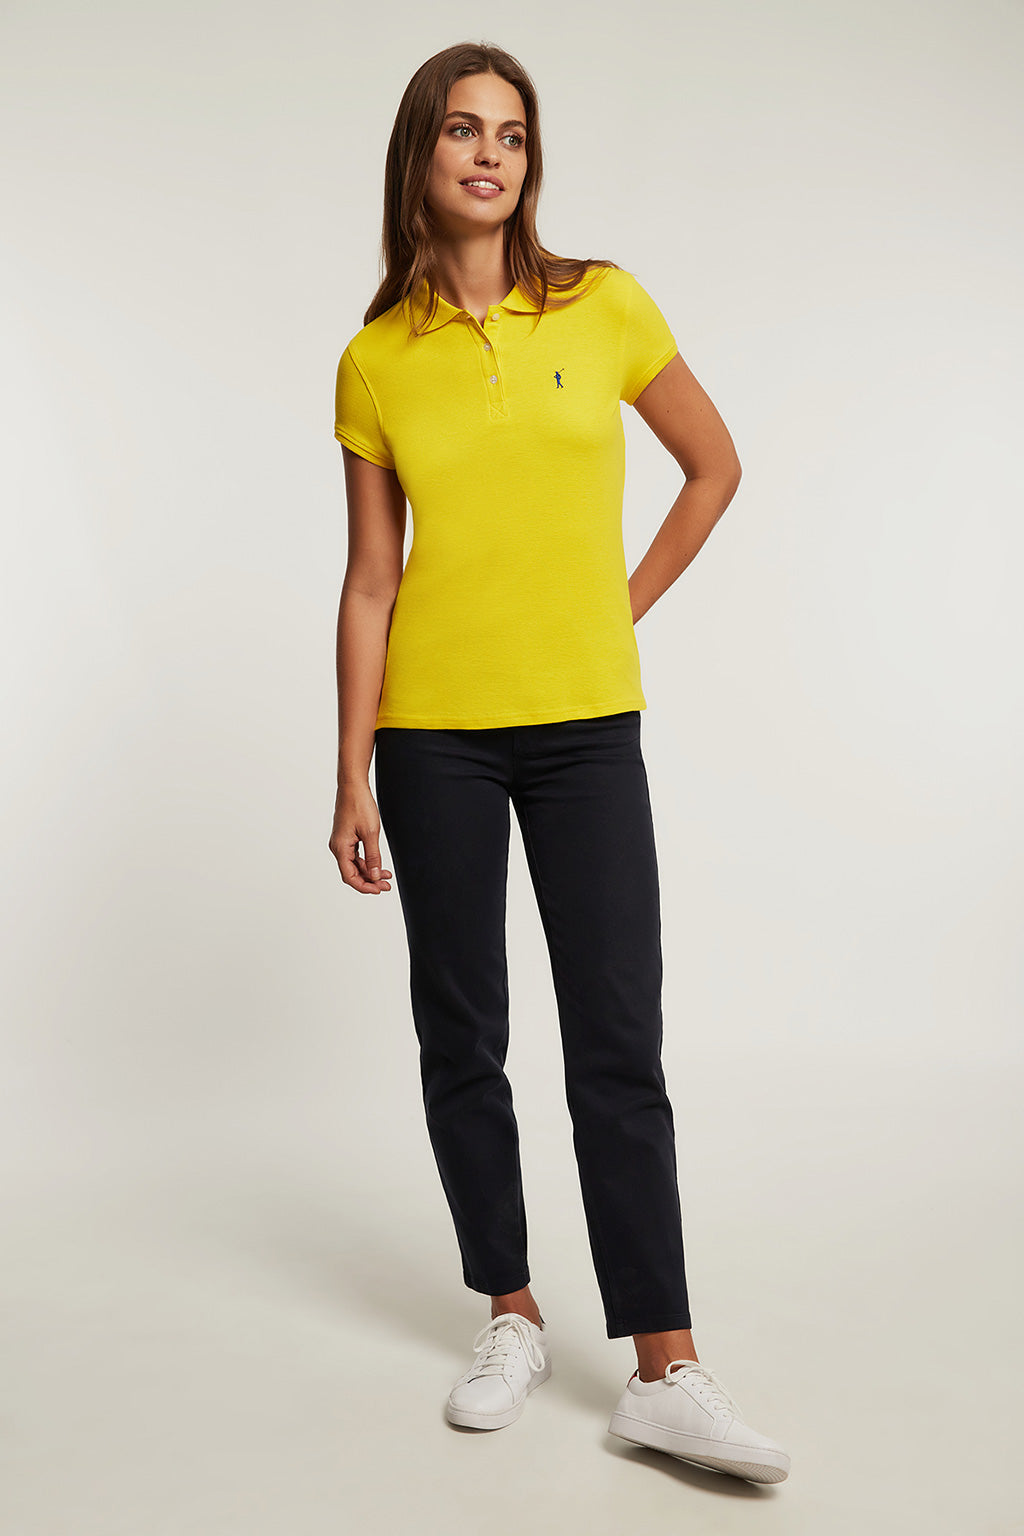 Yellow polo shirt with embroidered logo